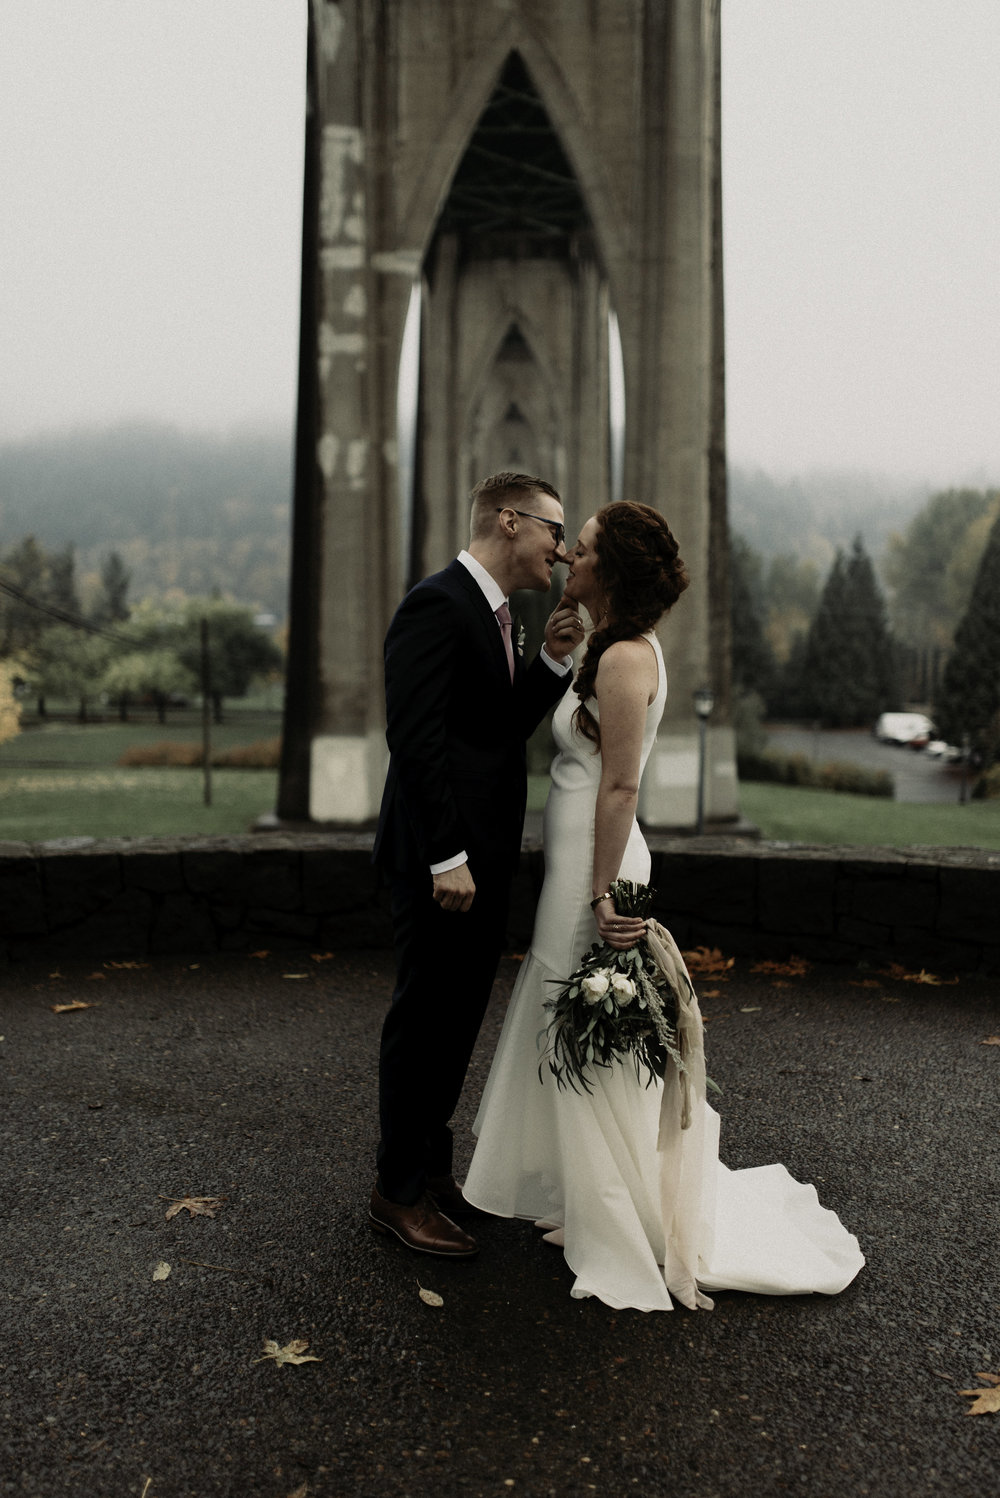 hayley_andrew_coopers_hall_wedding_portland_09.jpeg